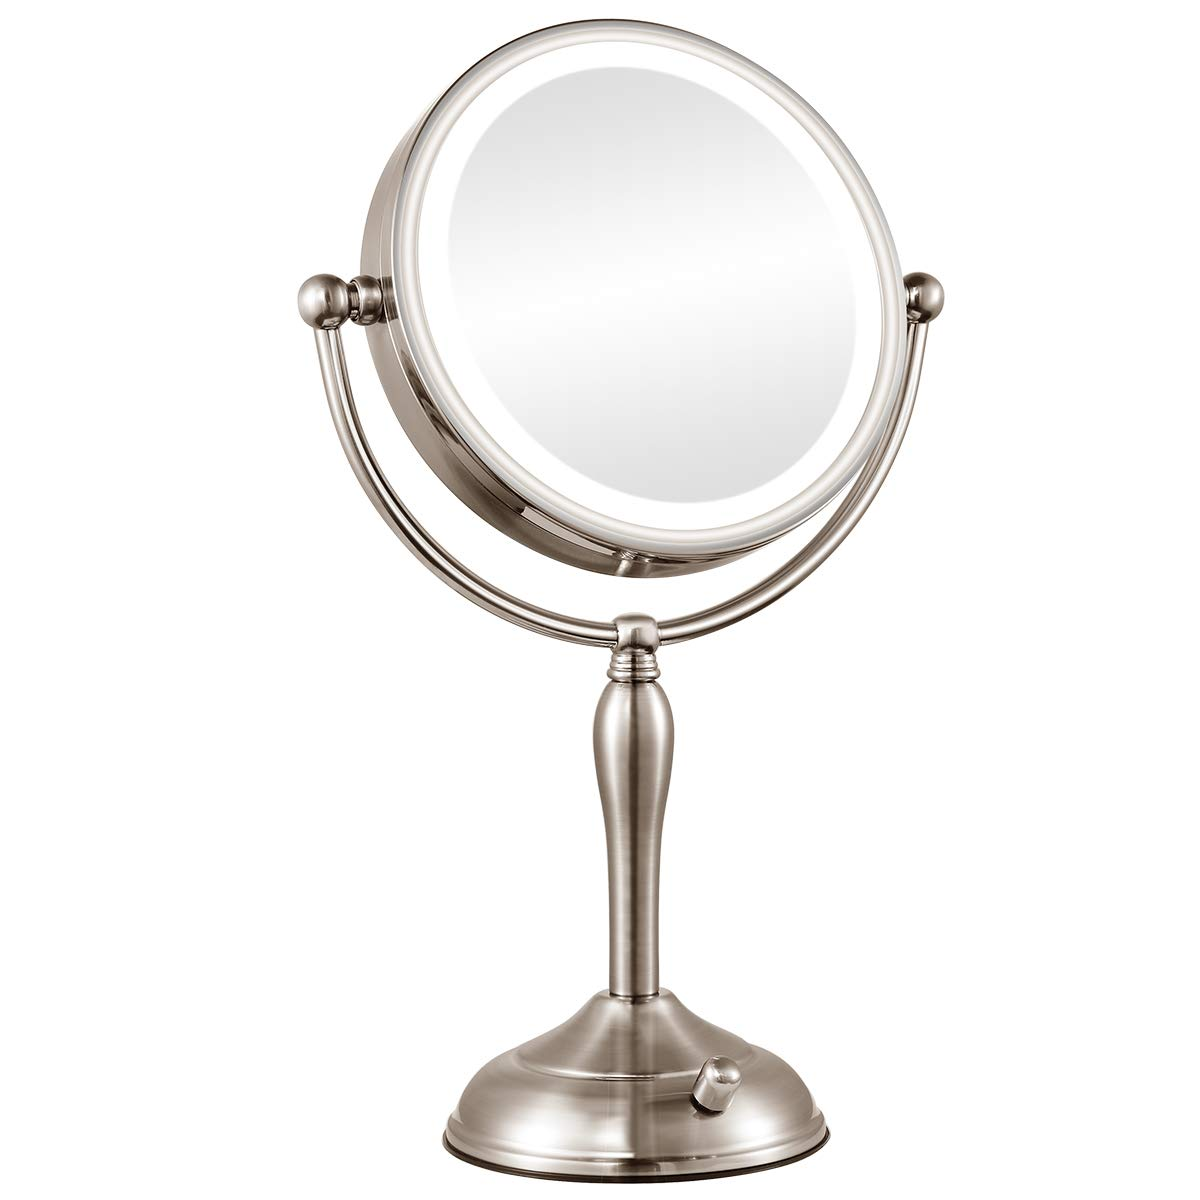 Orange Tech 8 inch 1X/10X Magnifying Lighted Makeup Mirror, Double Sided Magnification Vanity Mirror with Lights, Dimmable Natural Light, Rotate Button & Dual Power Supply